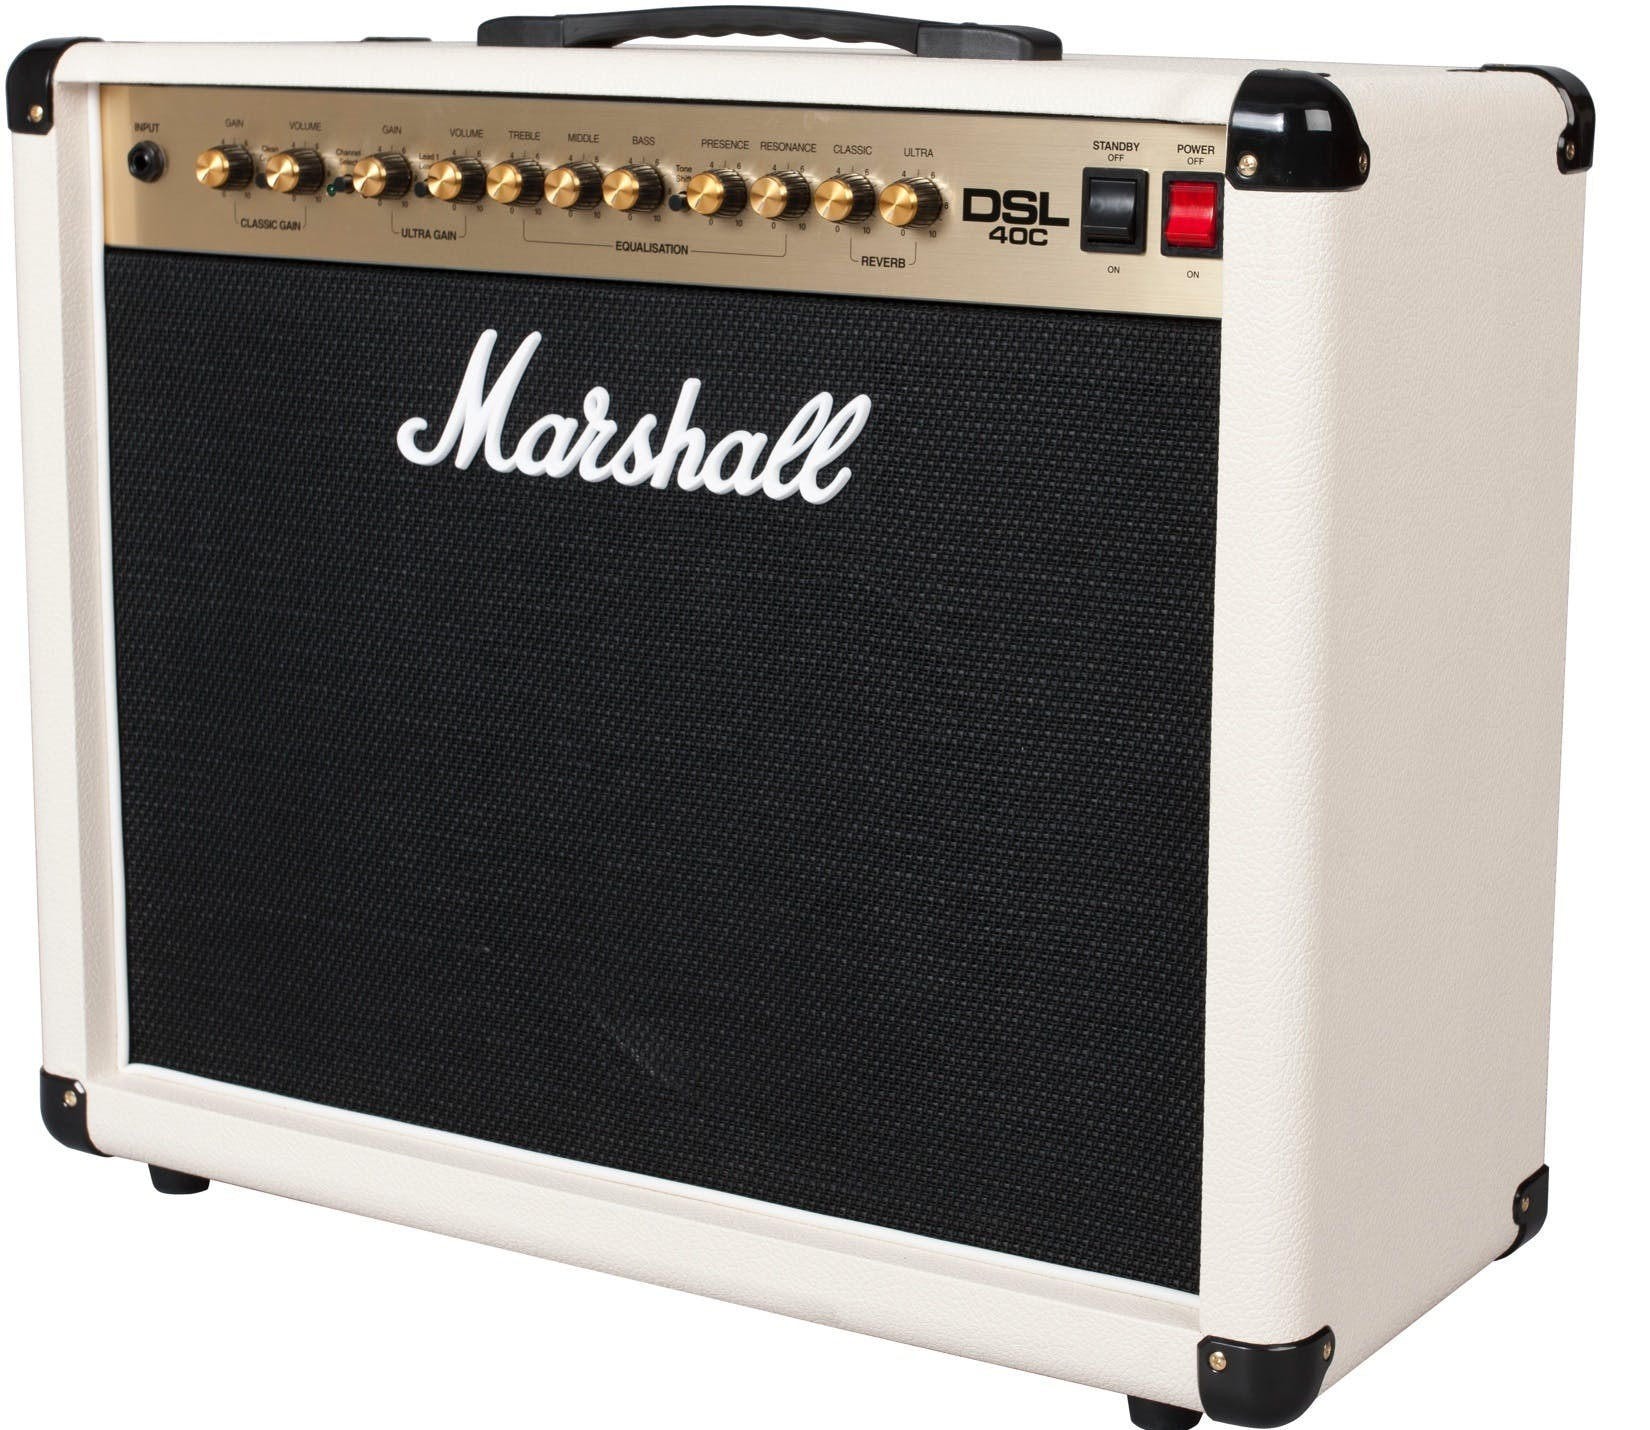 Limited Edition Marshall DSL40CC White Combo - Andertons